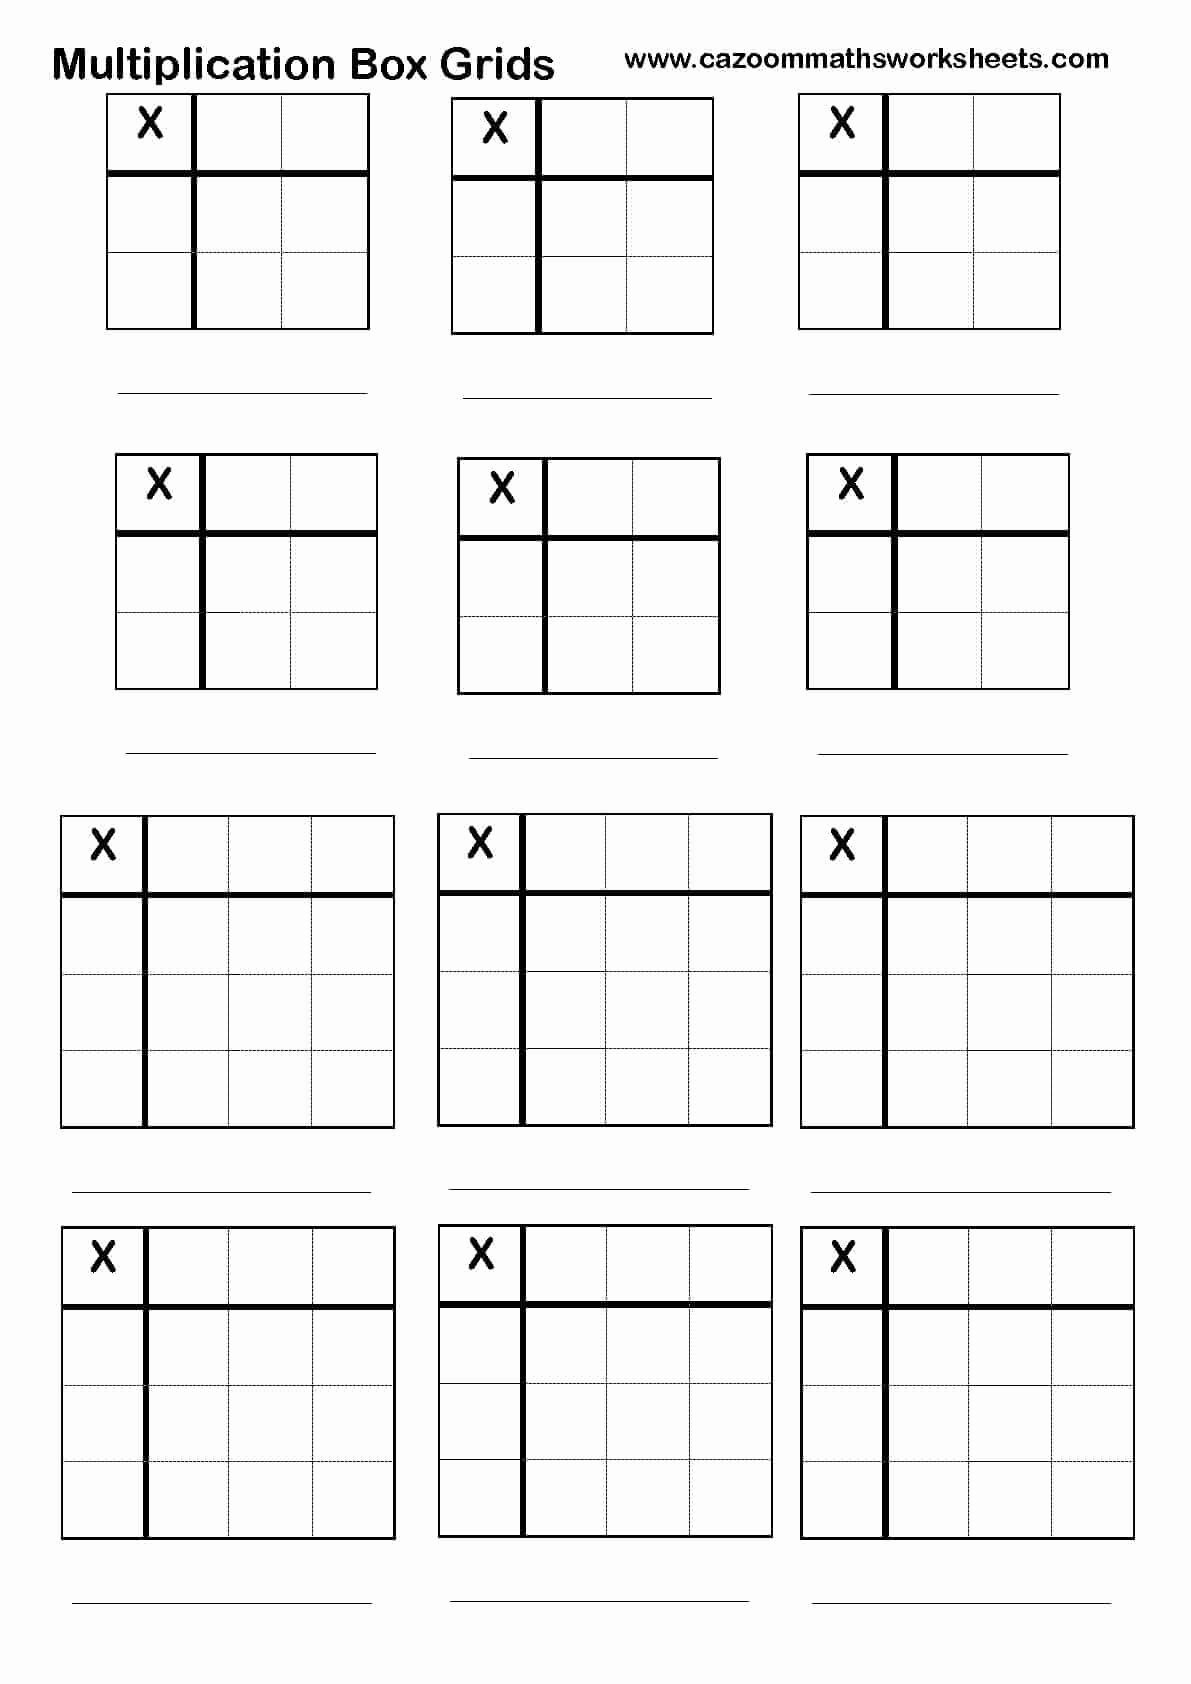 Box Method Multiplication Worksheet Fresh Cazoom Maths Worksheets Number Resources Math Worksheets